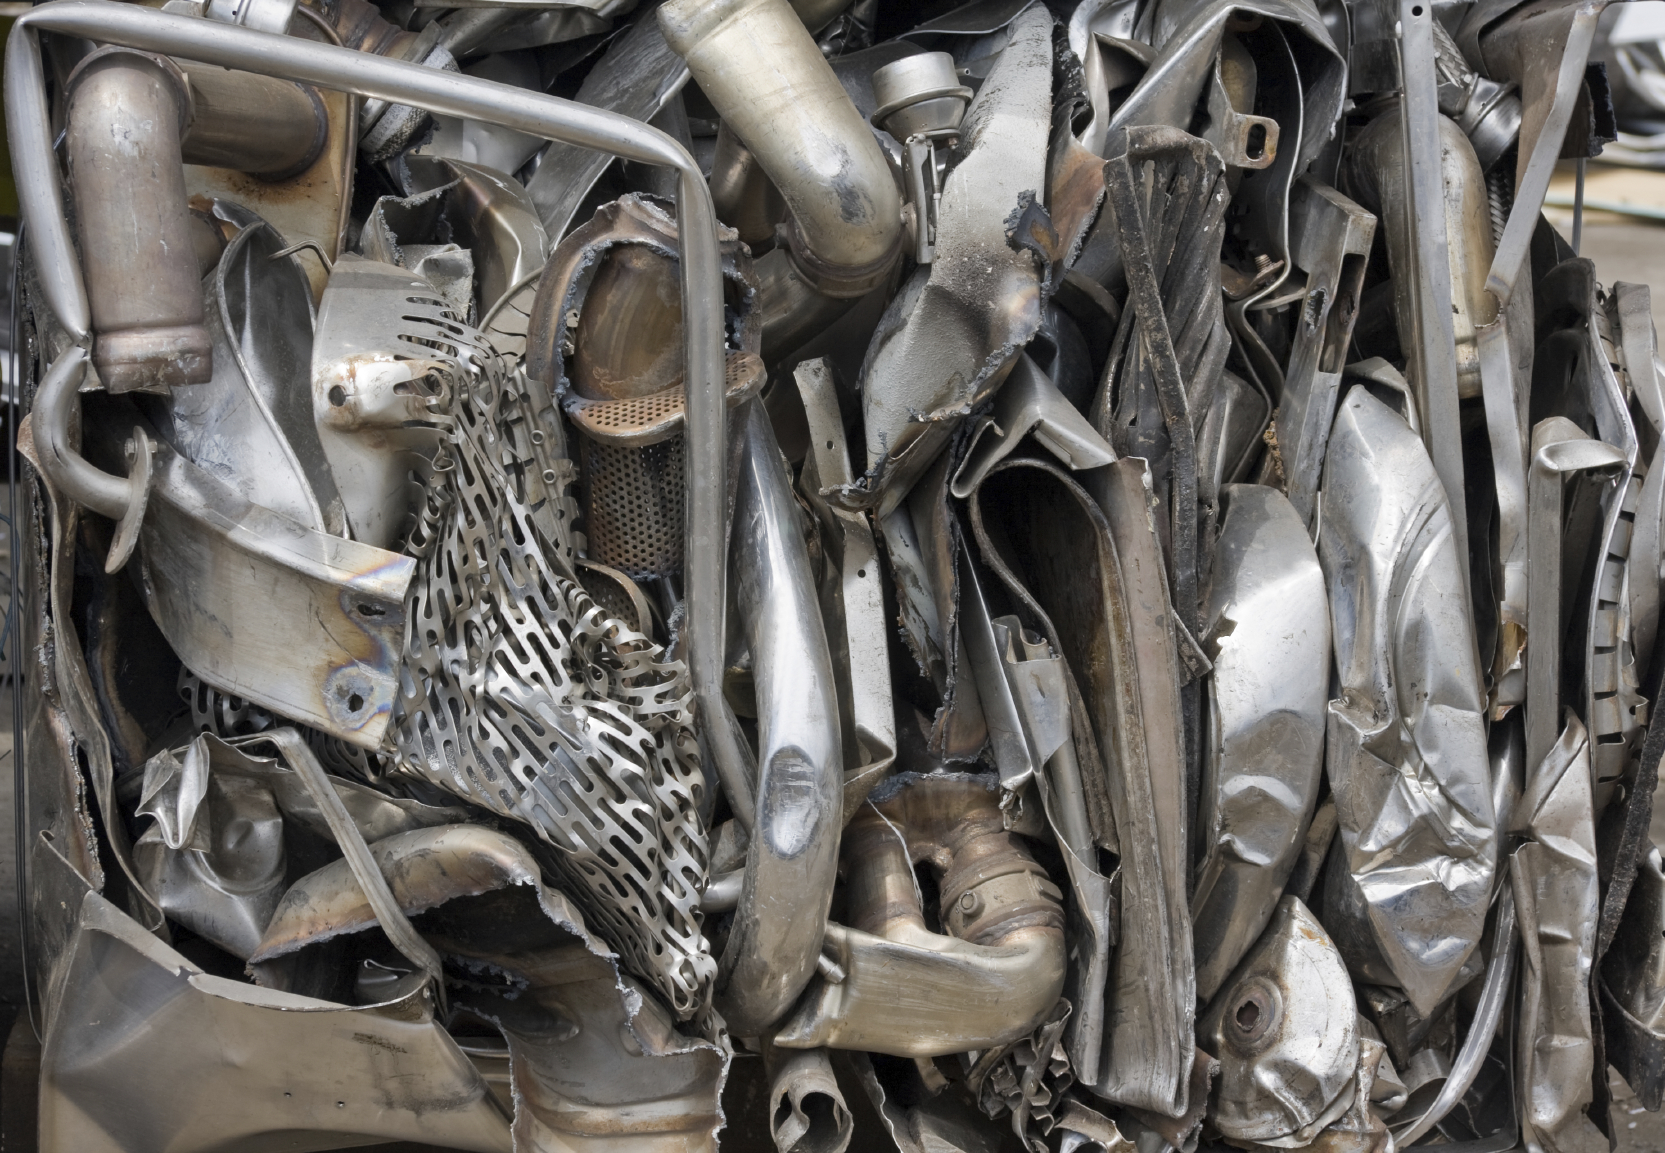 Scrap metal prices per kilo in Kenya 2020